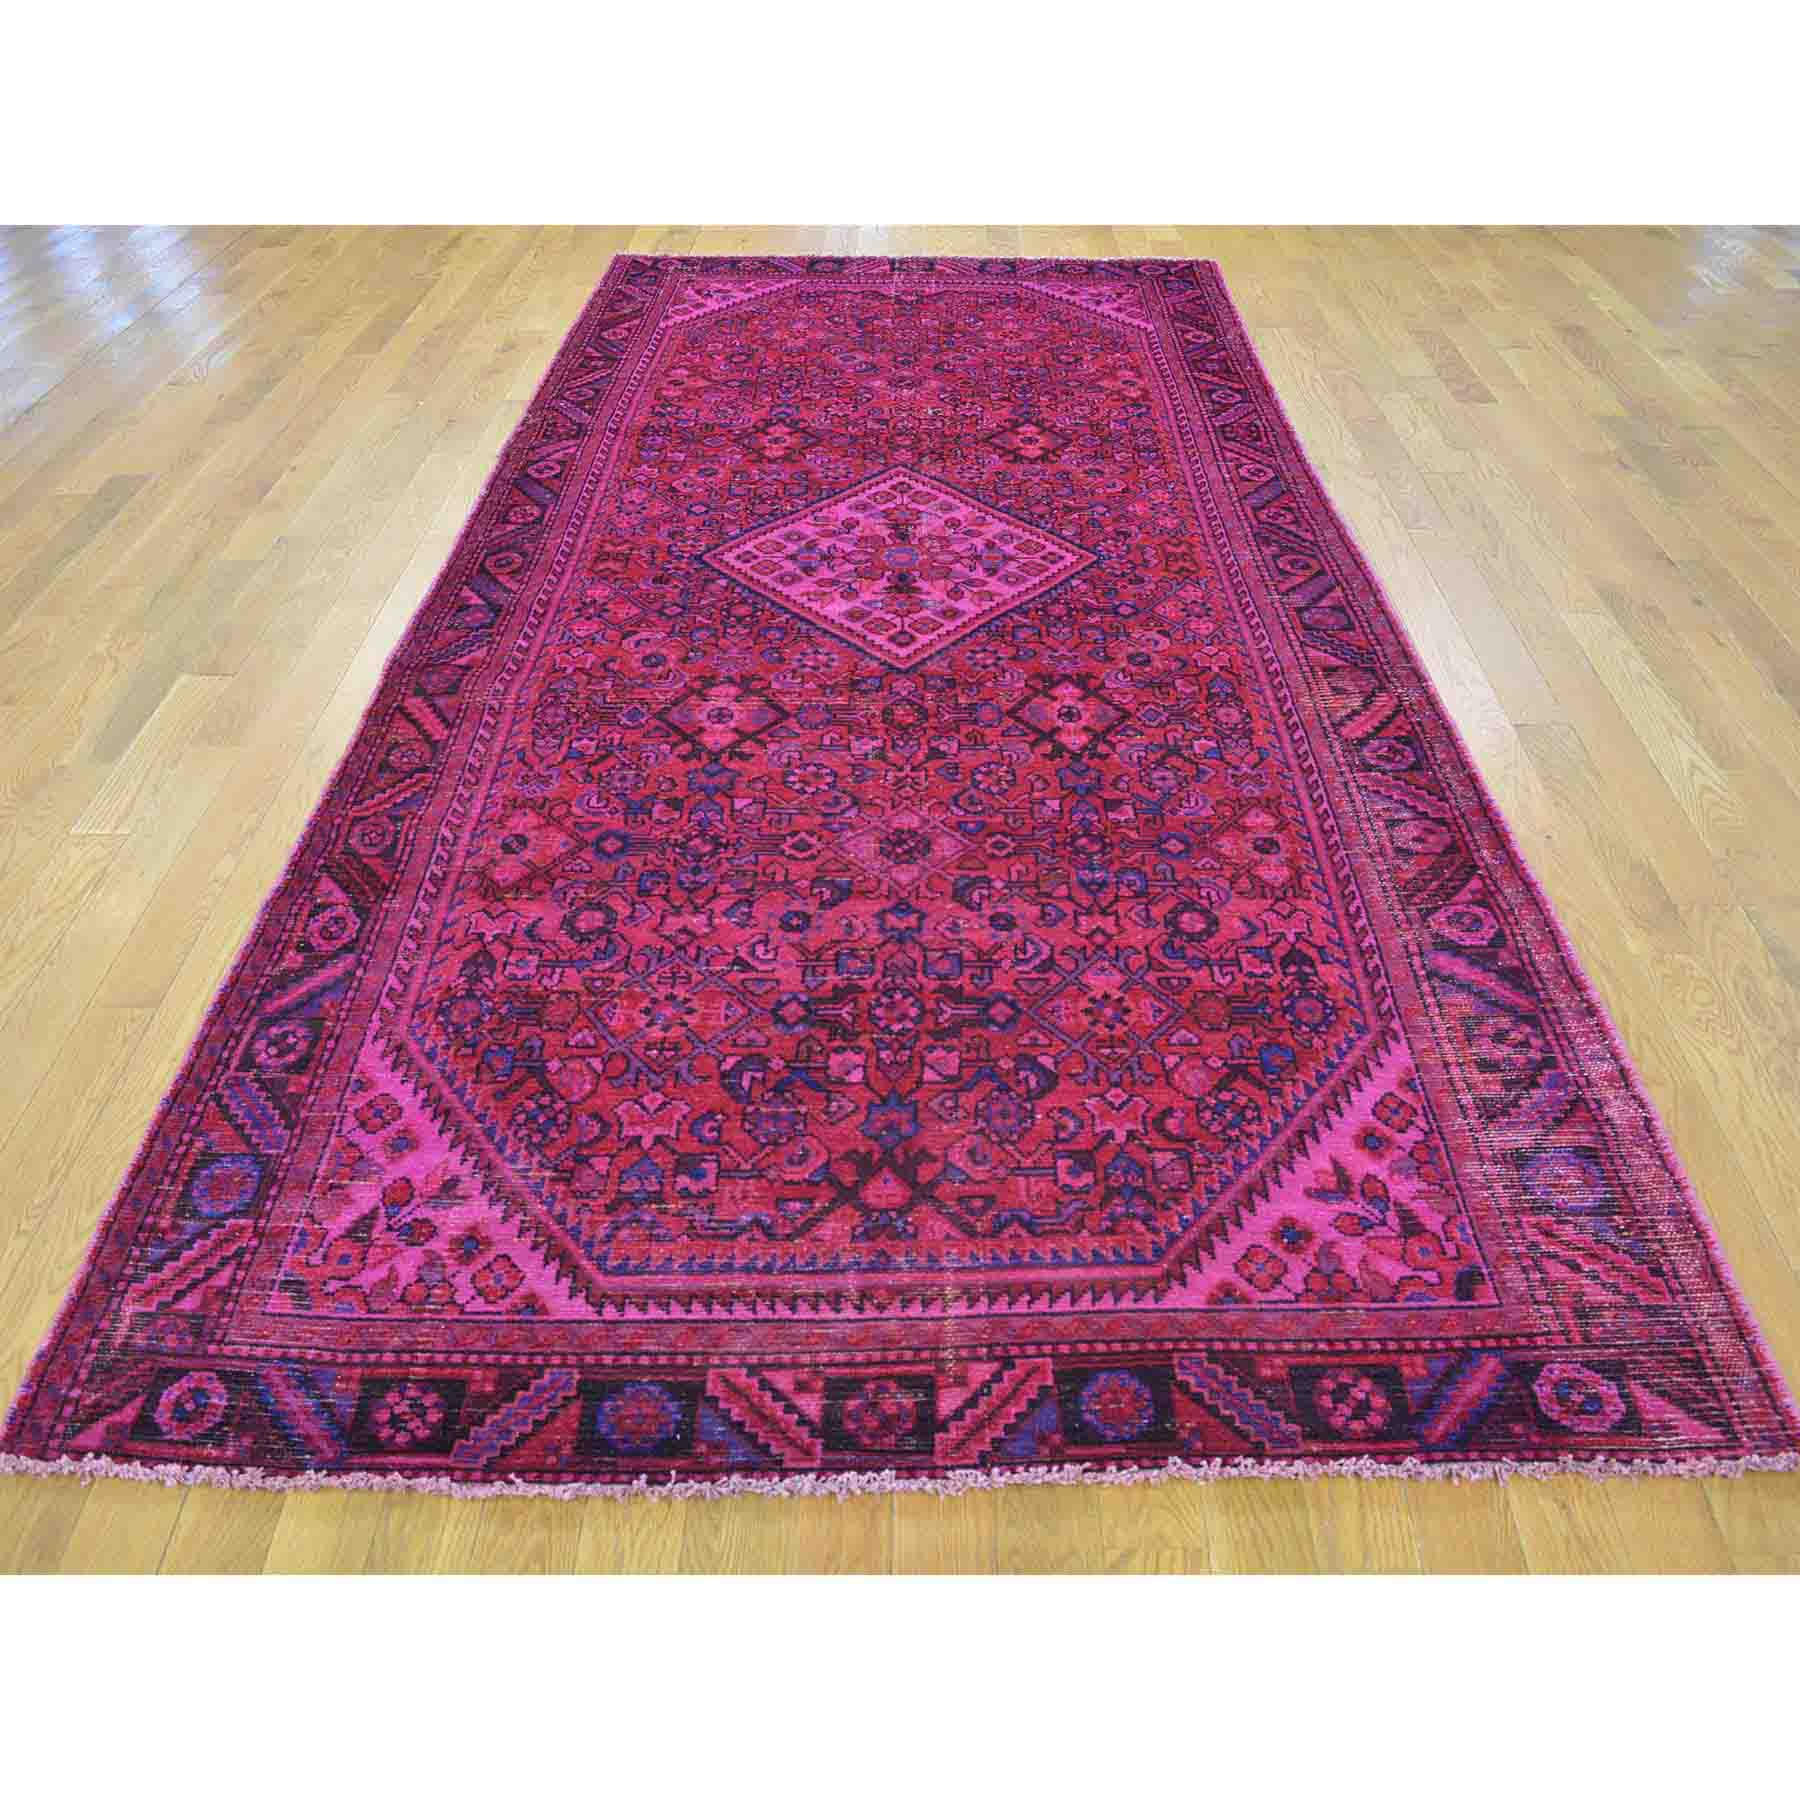 Overdyed-Vintage-Hand-Knotted-Rug-141360